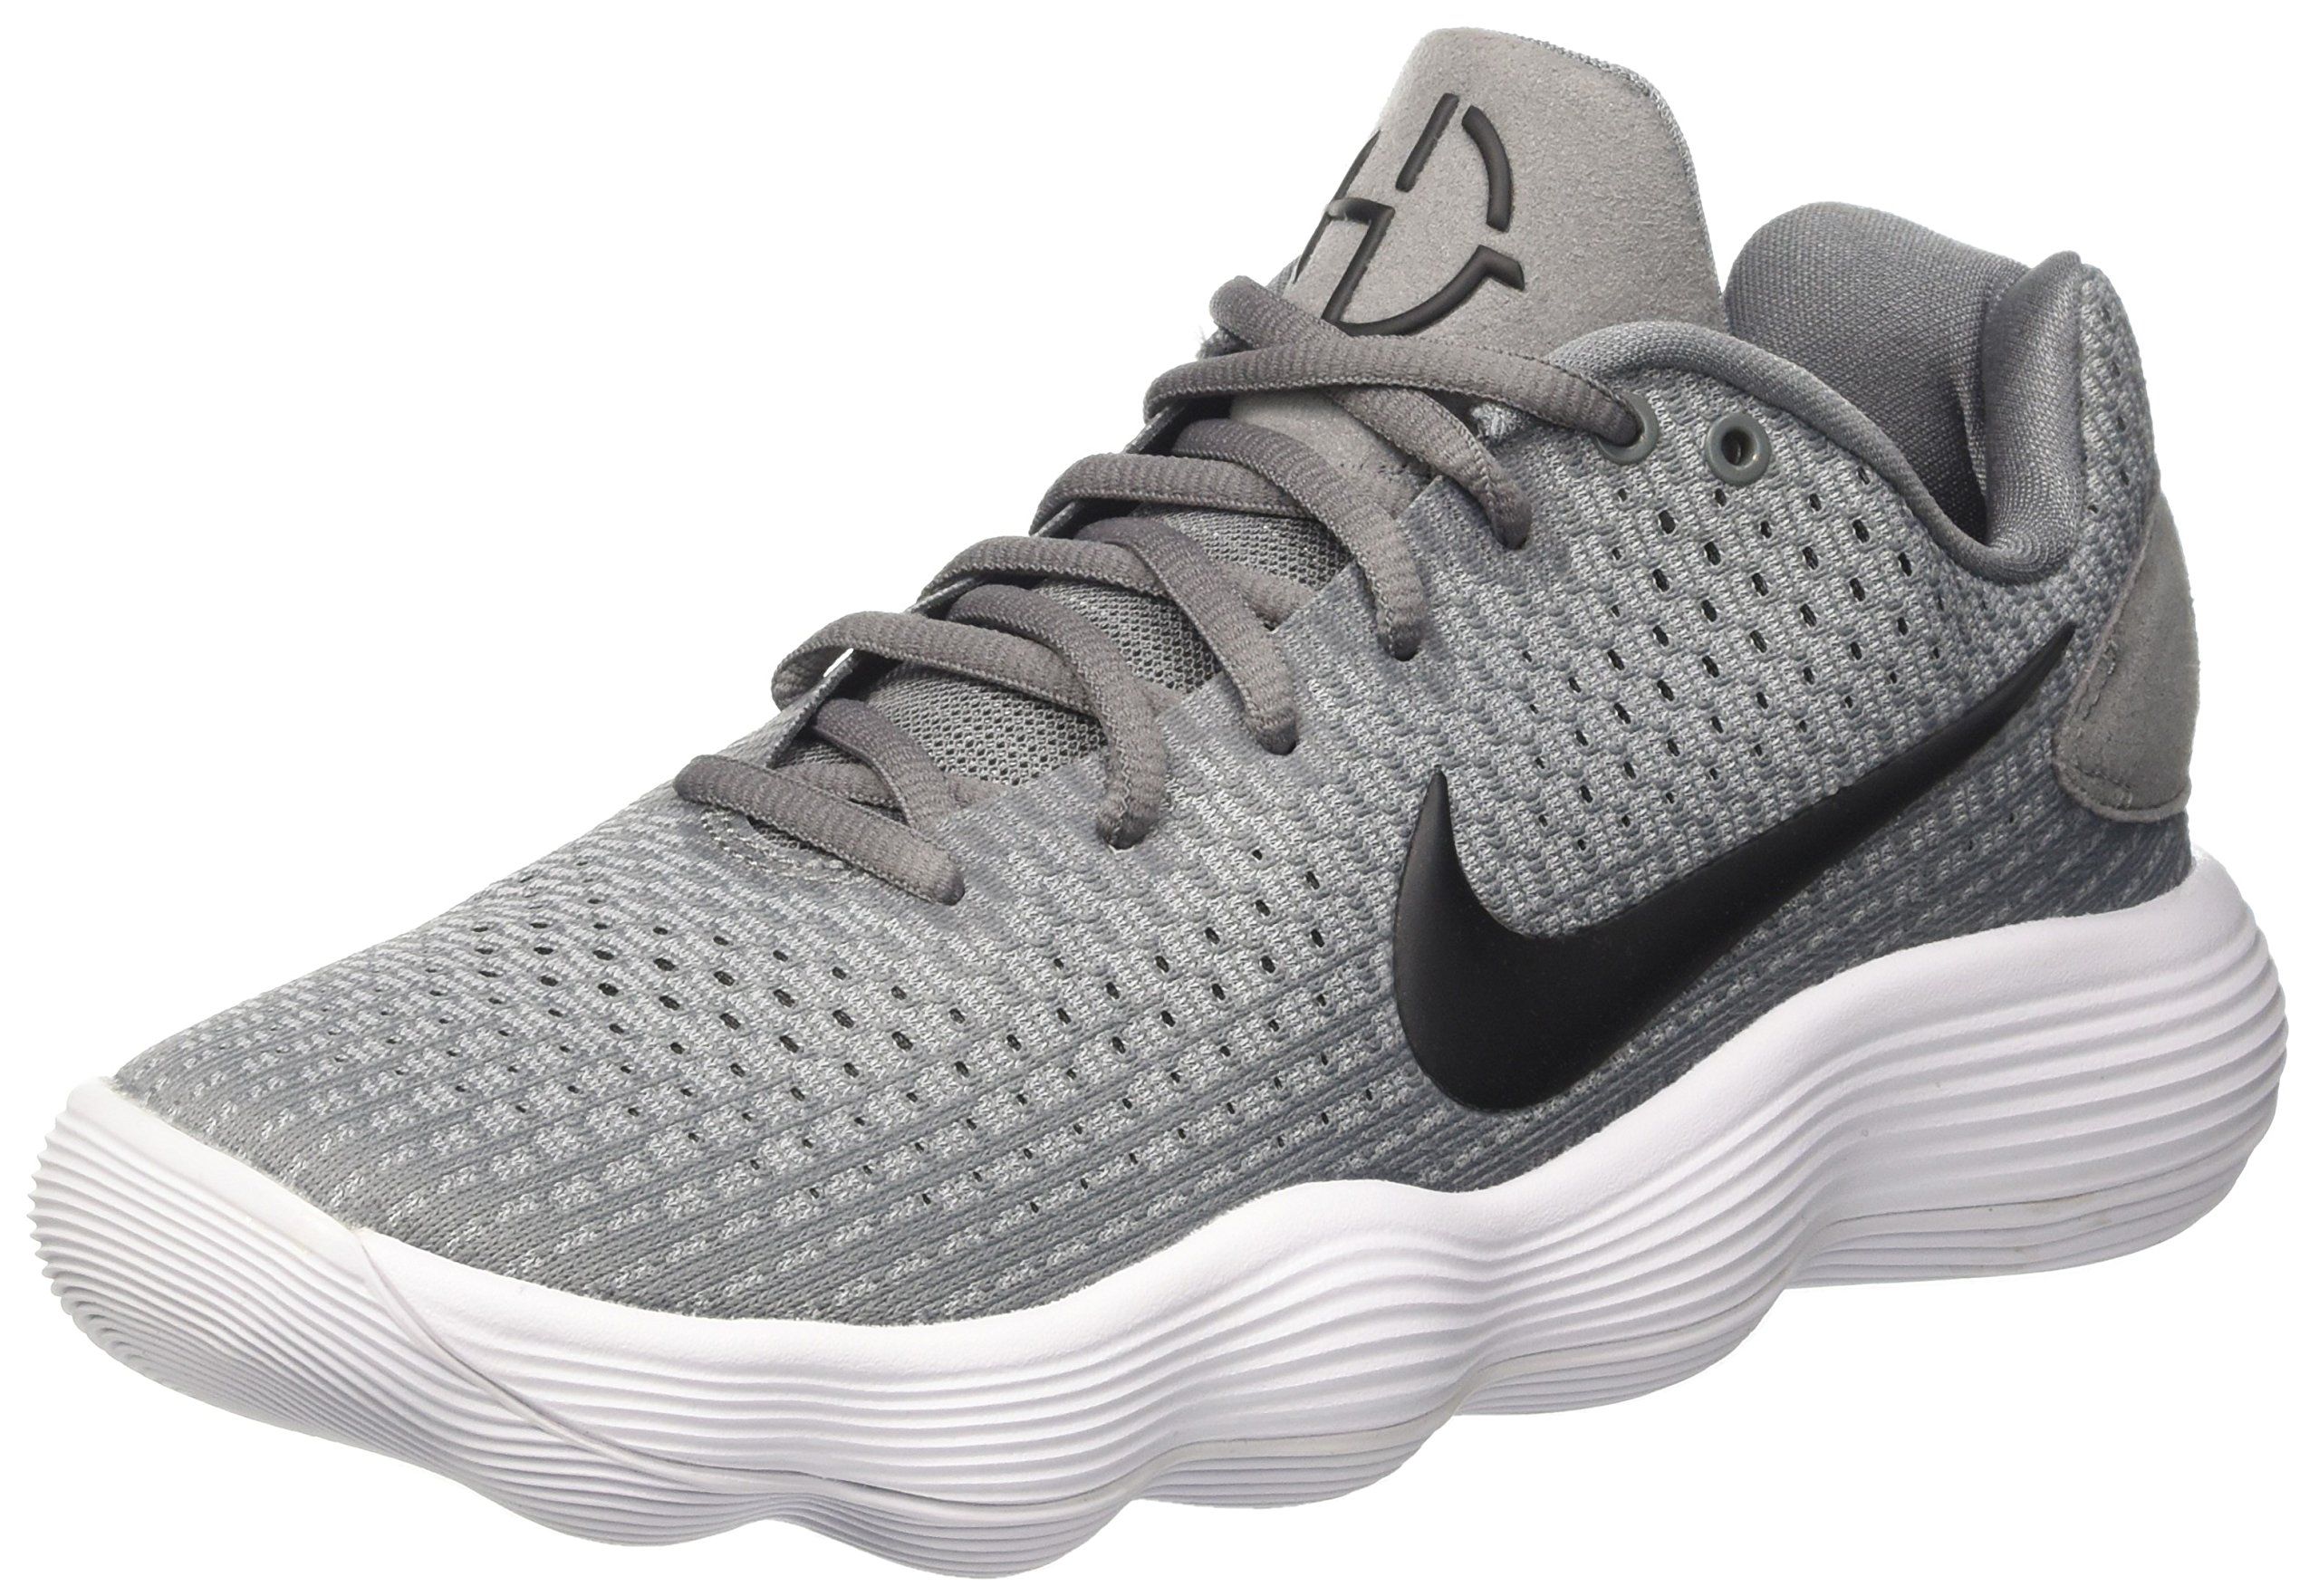 776b28d7d347 NIKE Men s React Hyperdunk 2017 Low Cool Grey Black Wolf Grey Synthetic  Basketball Shoes